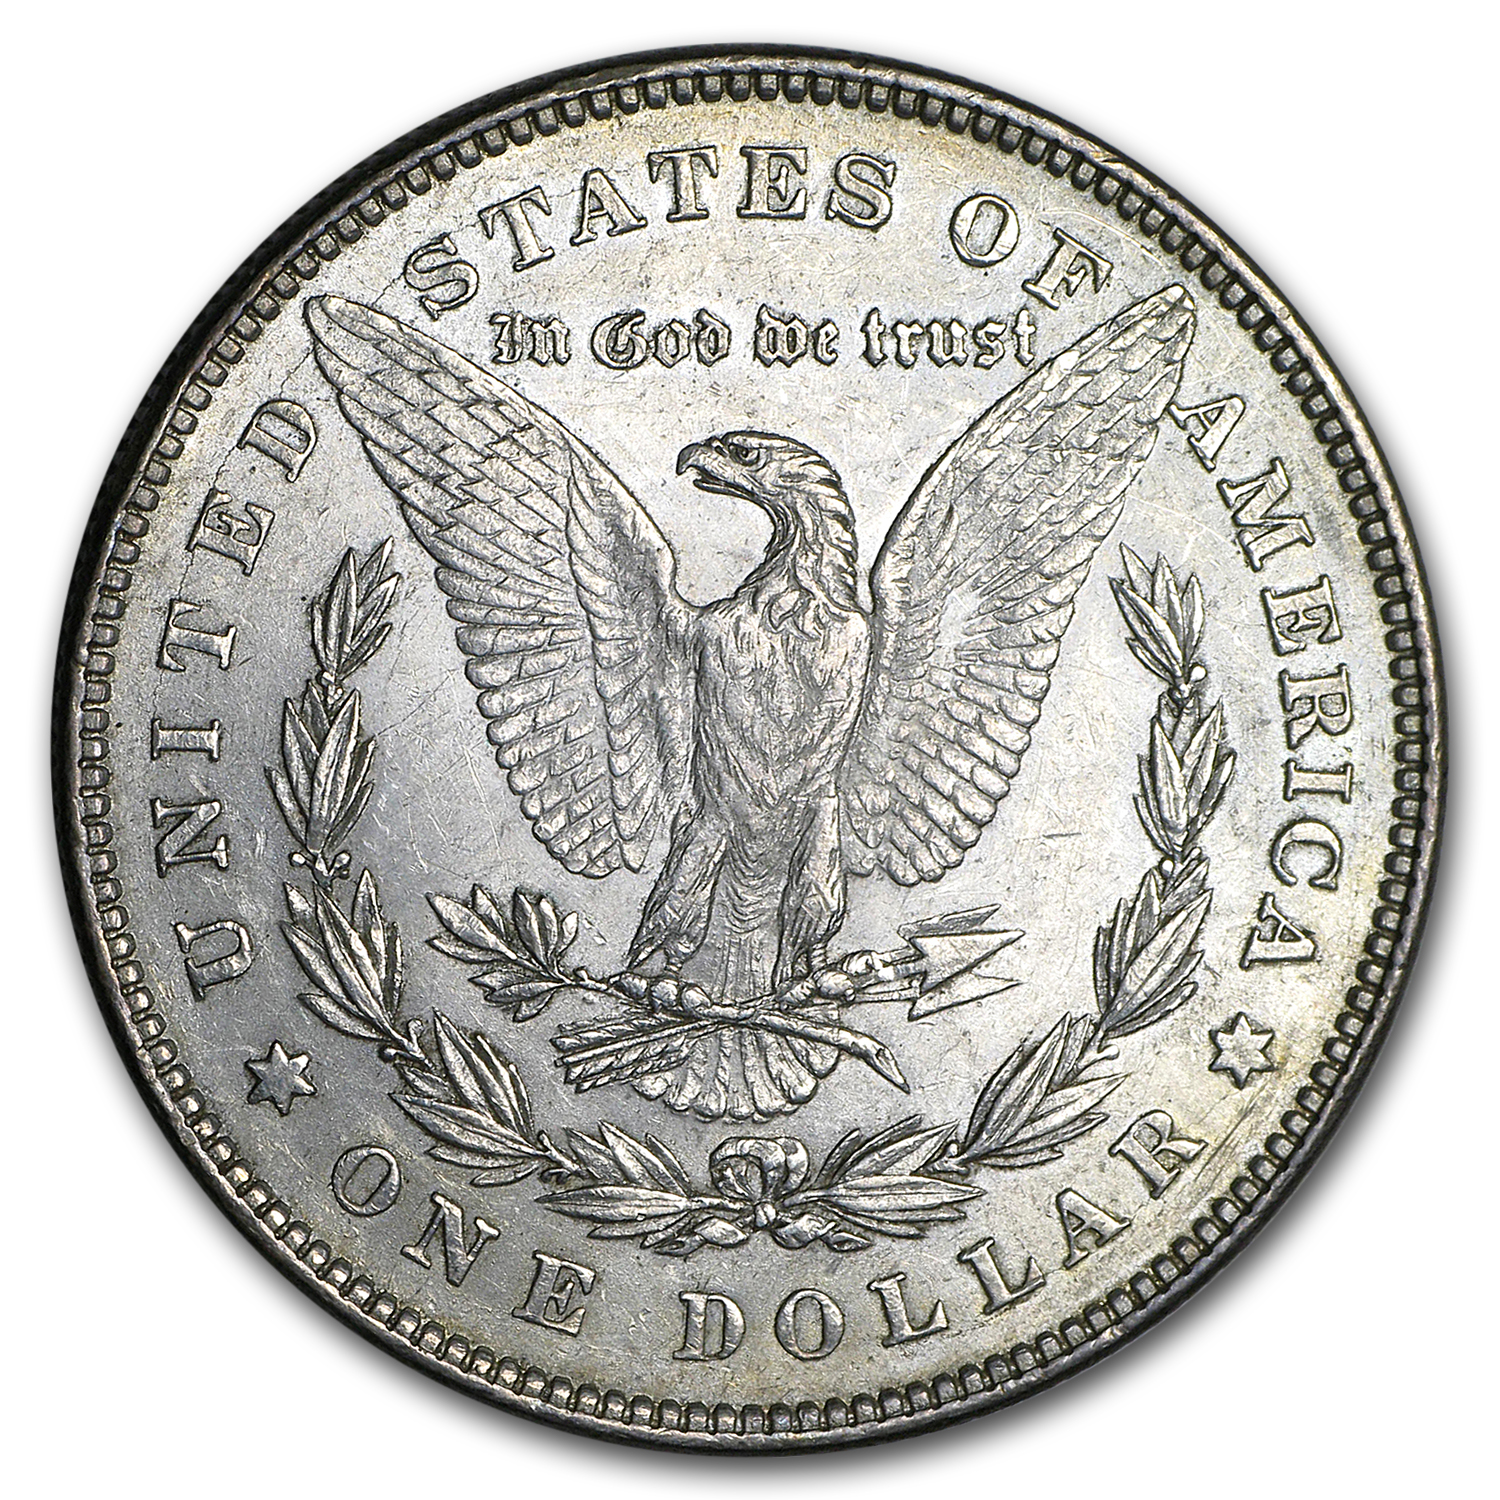 1878 Morgan Dollar 7/8 Tailfeathers AU (Strong)